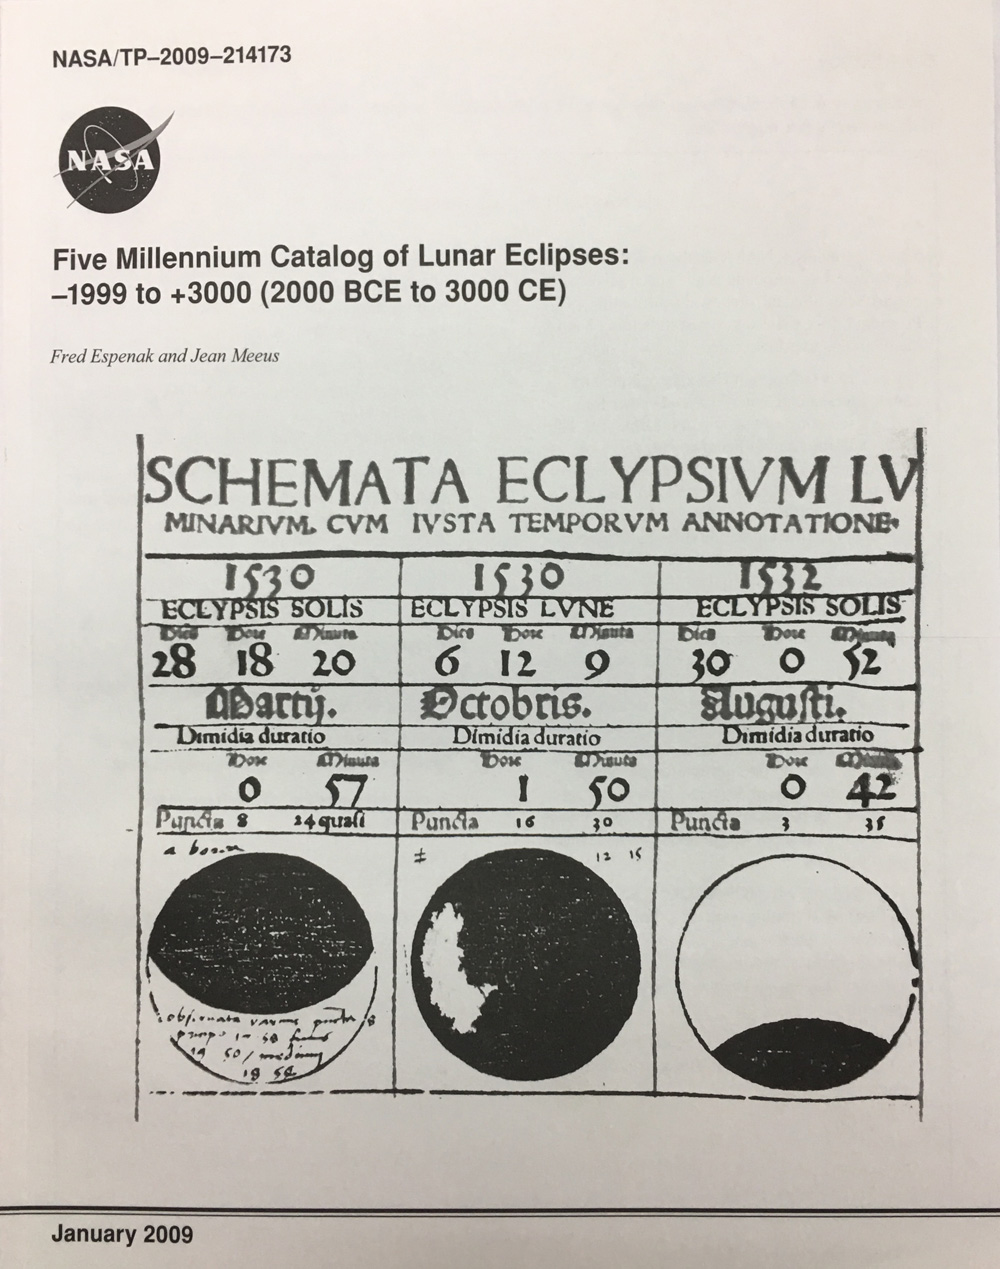 5 Millennium Catalog of Lunar Eclipses.jpg